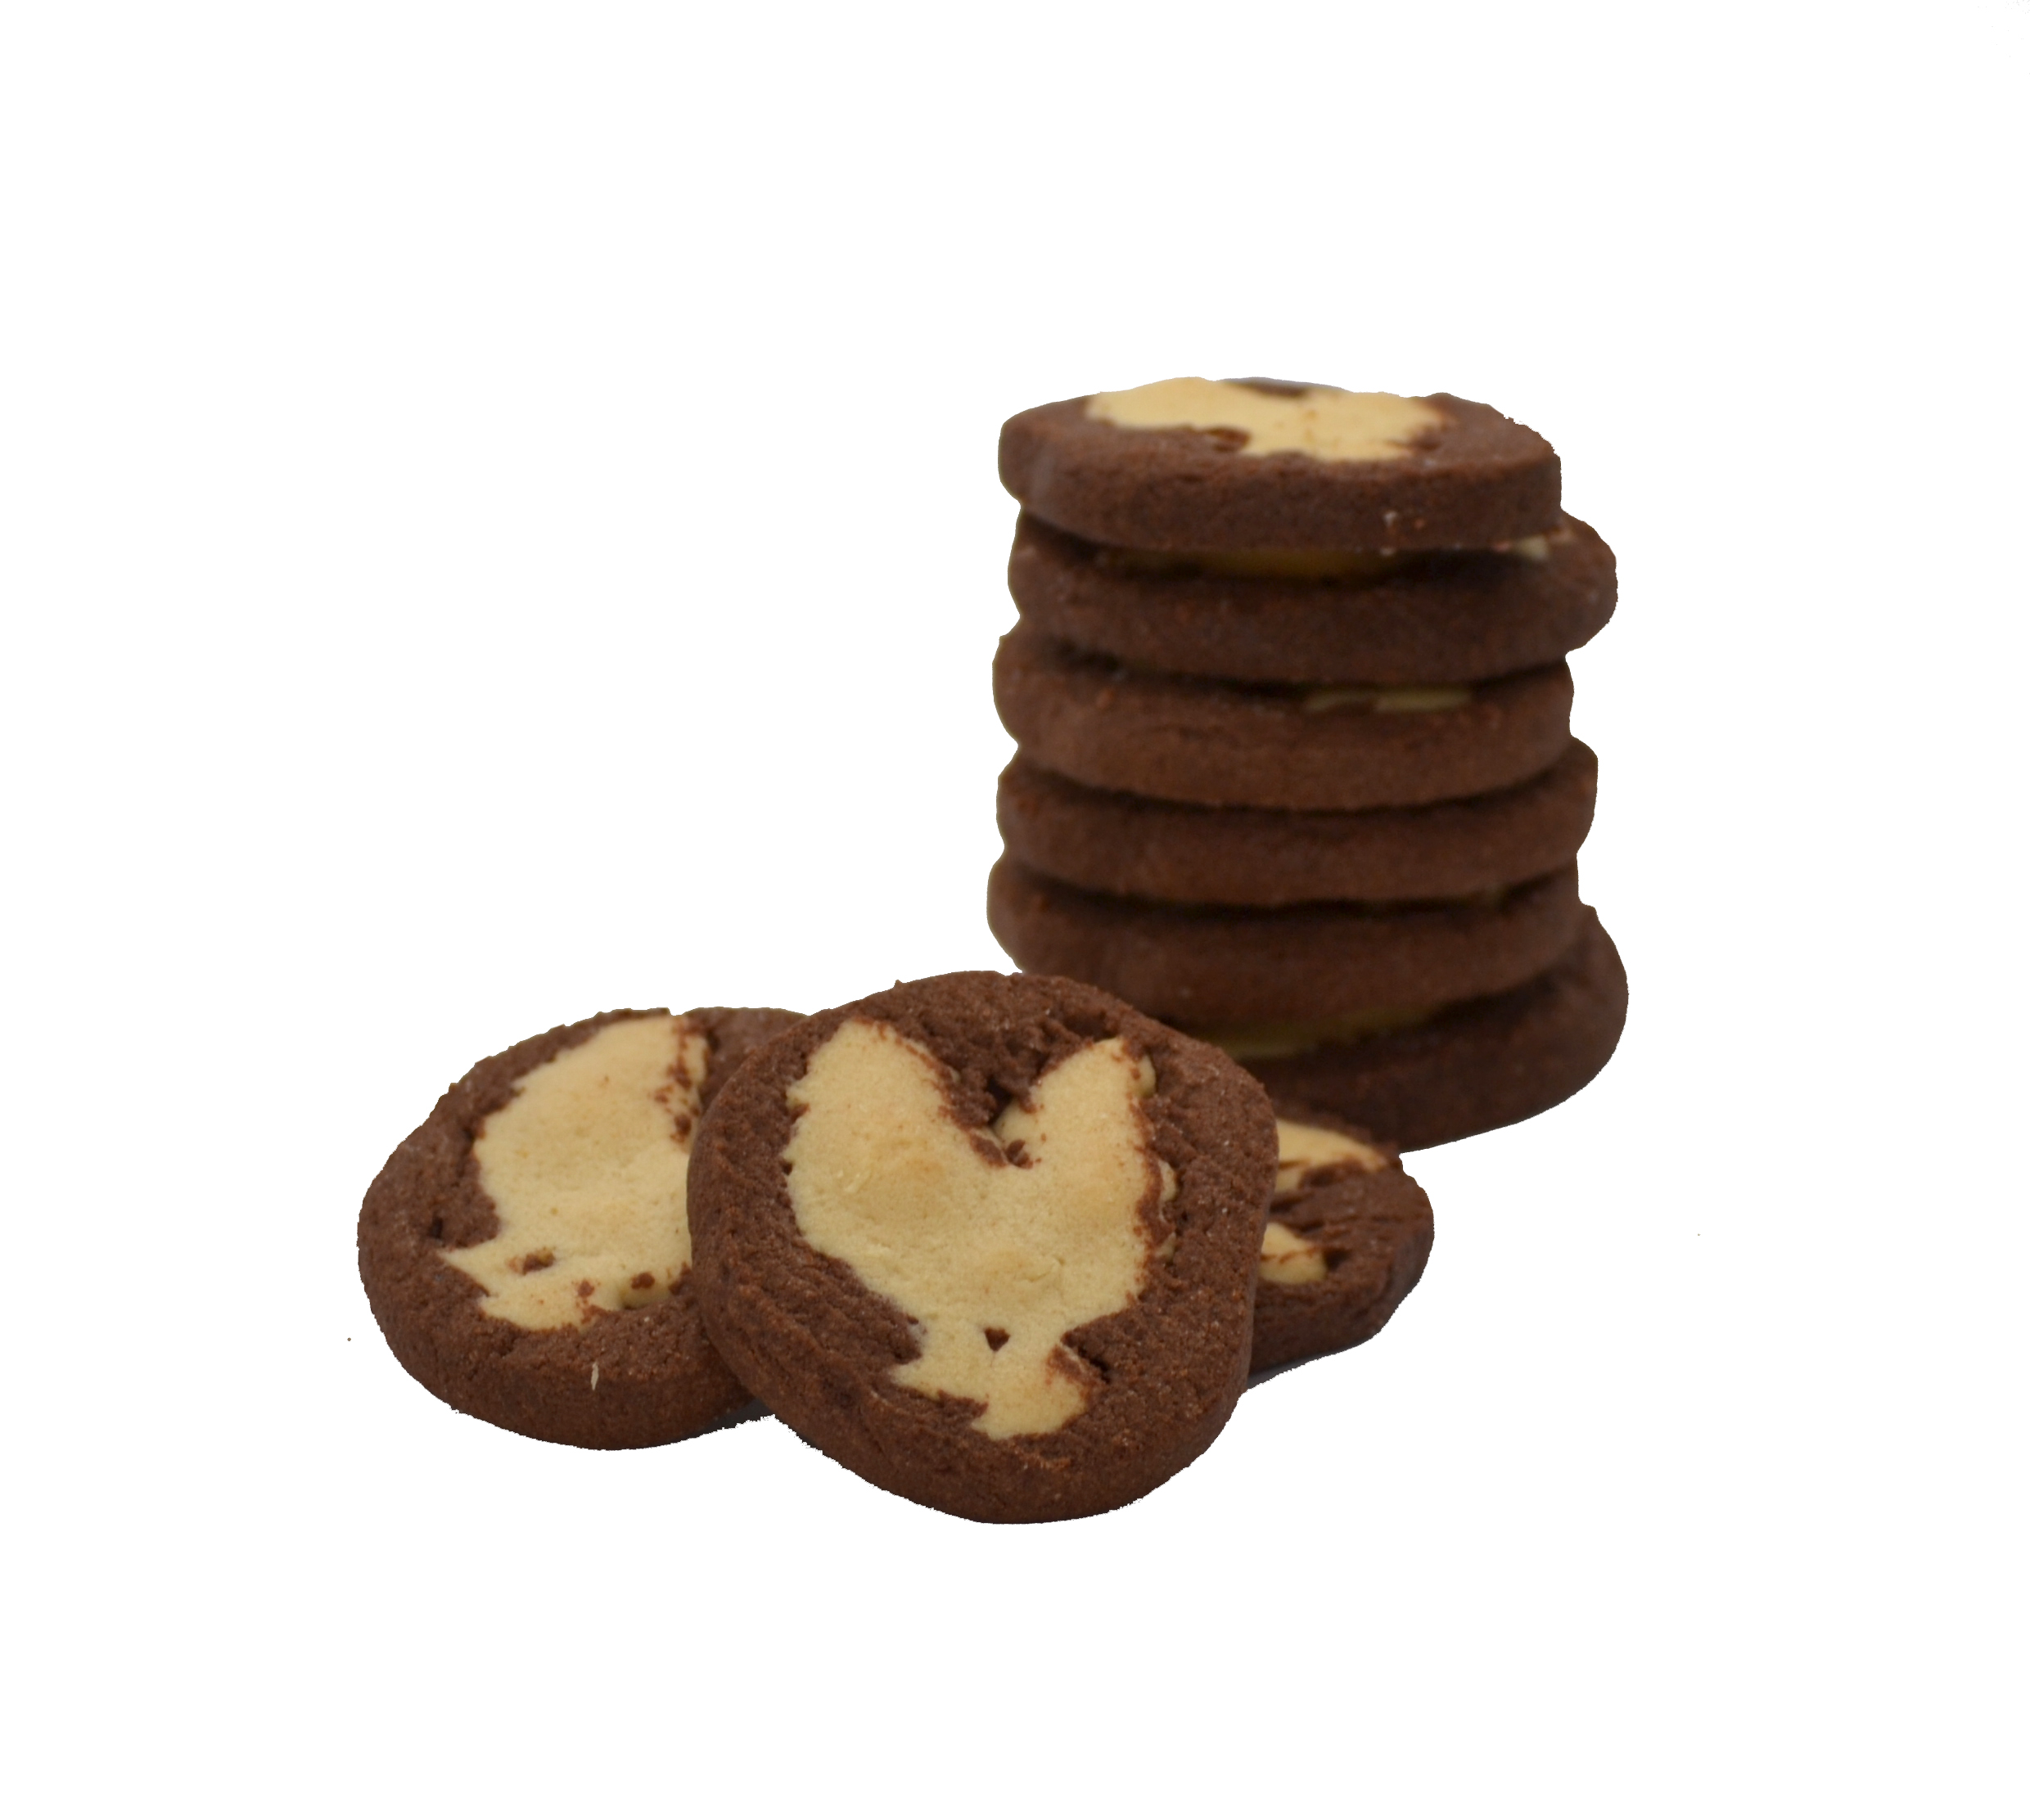 Kauai Rooster Cookies - Haupia Coconut Chocolate